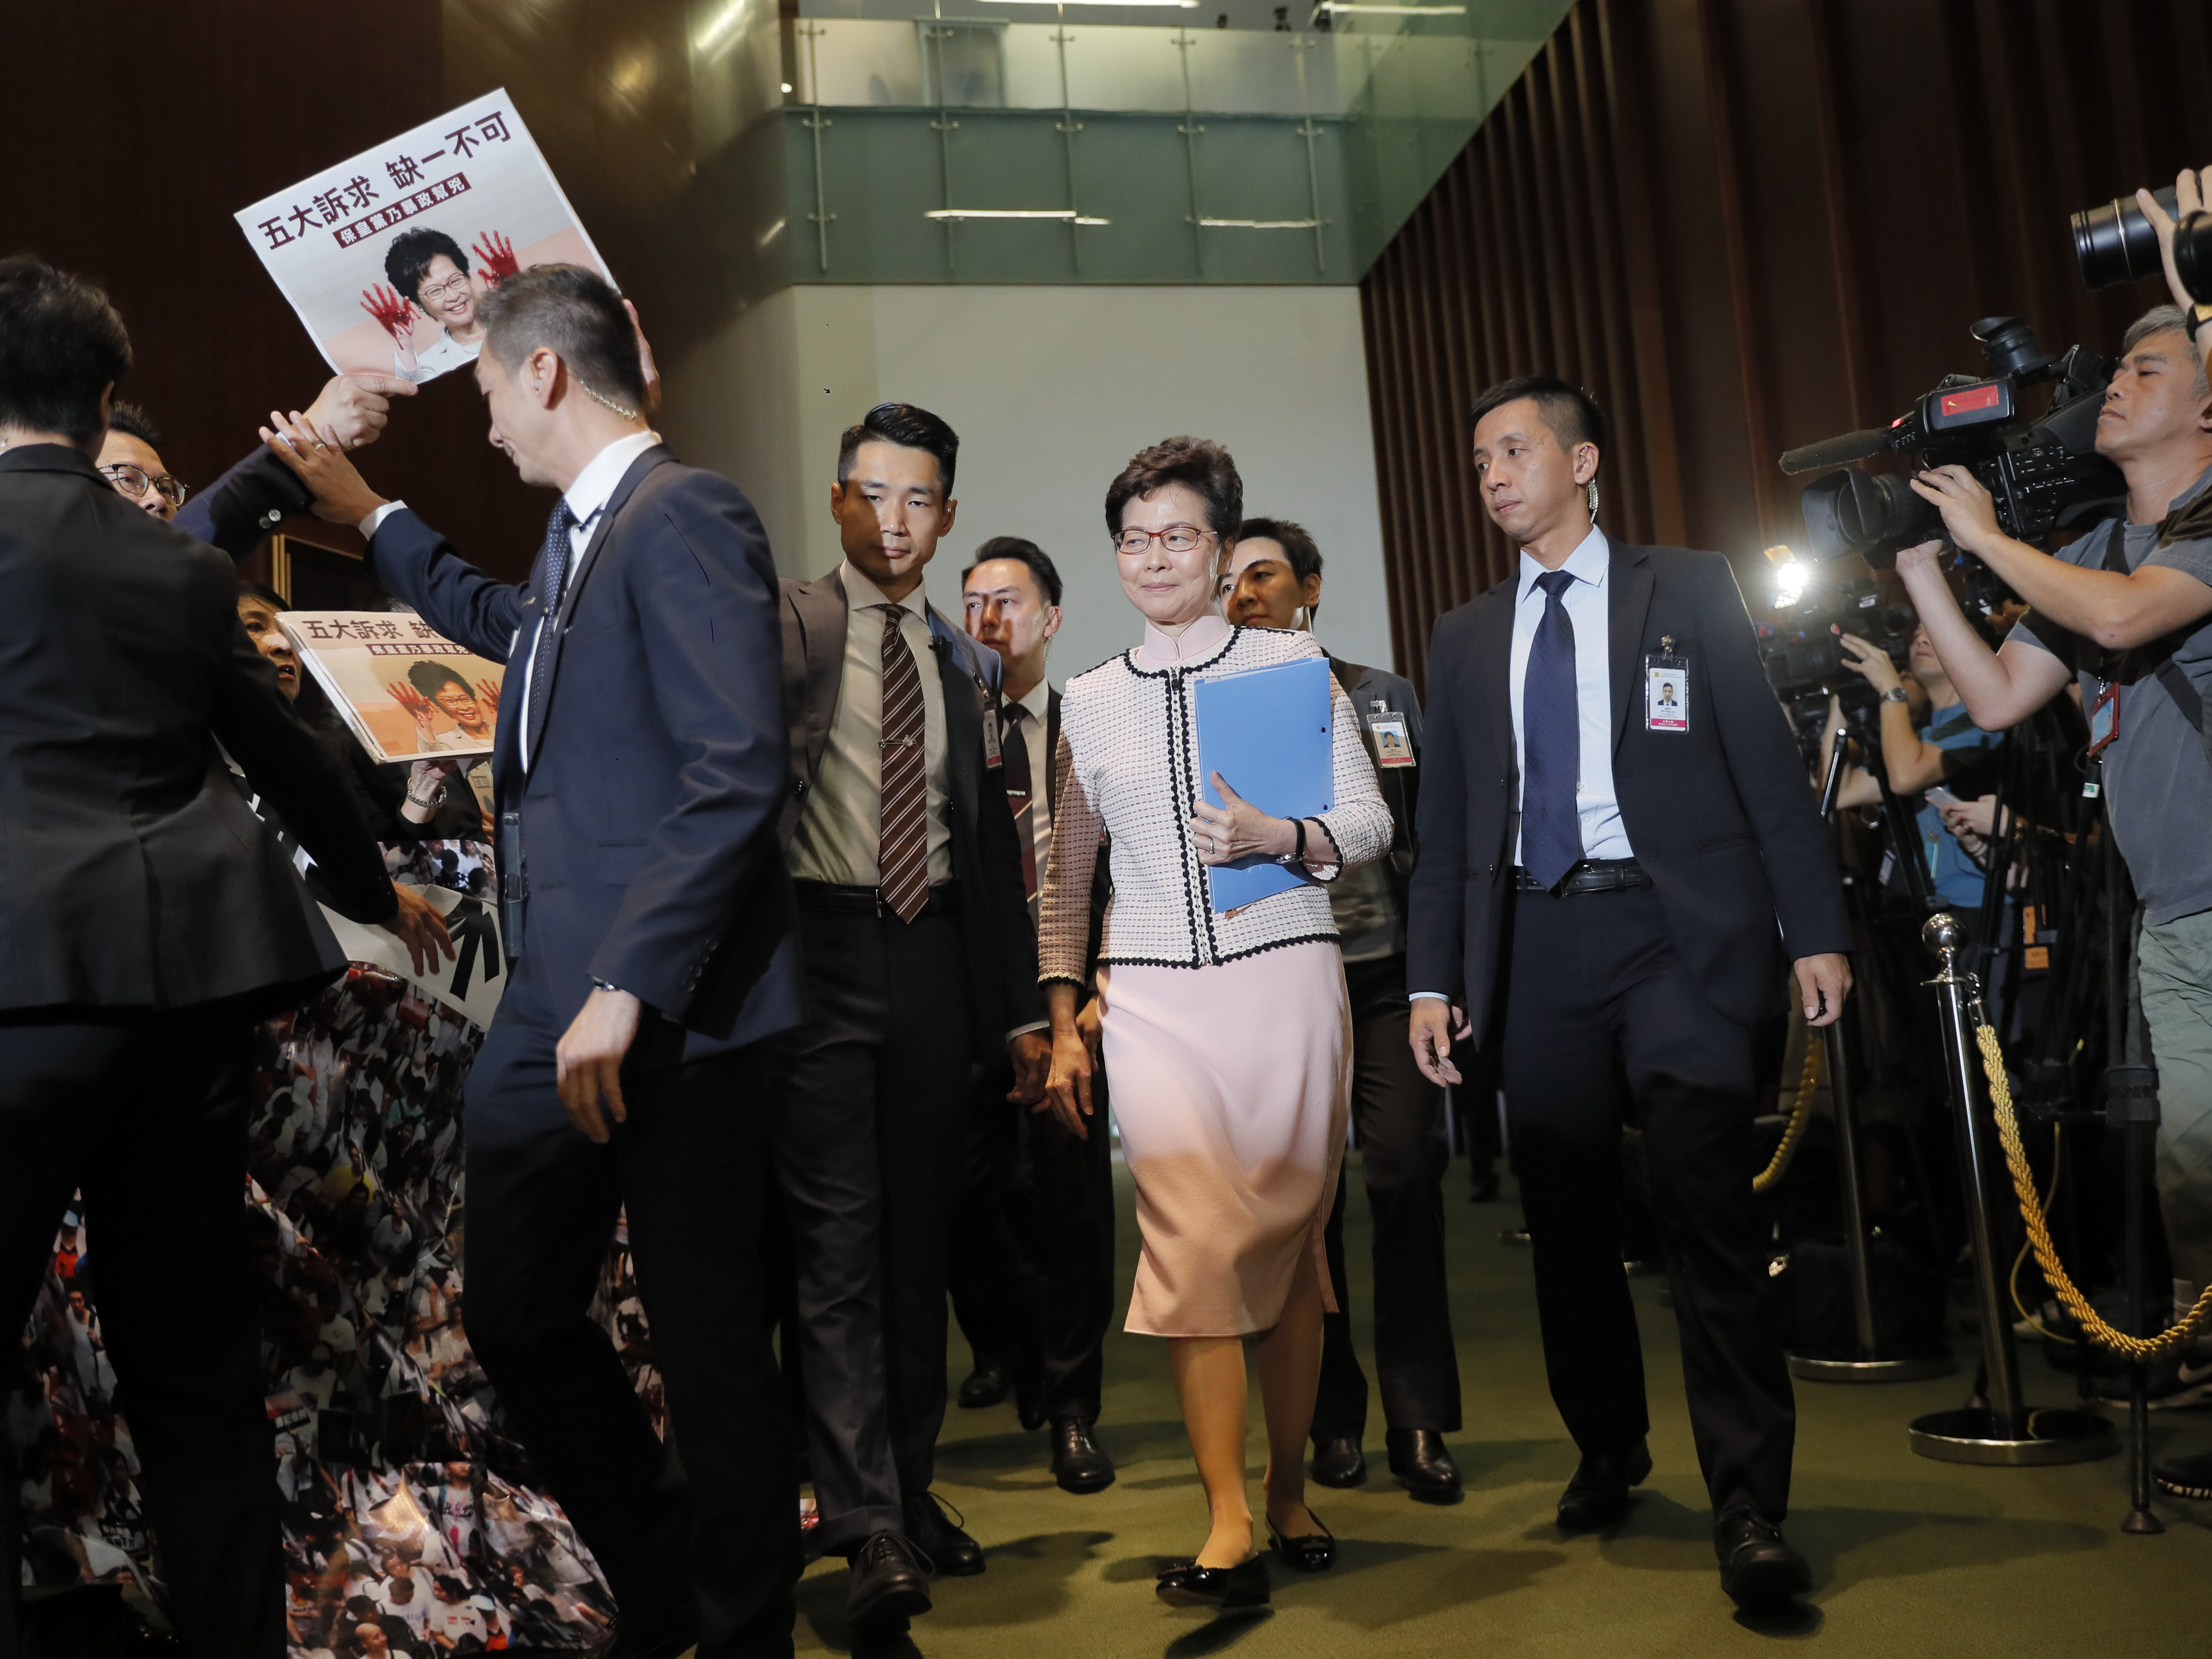 Hong Kong's Leader Driven Out Of Legislature By Raucous Pro-Democracy Lawmakers